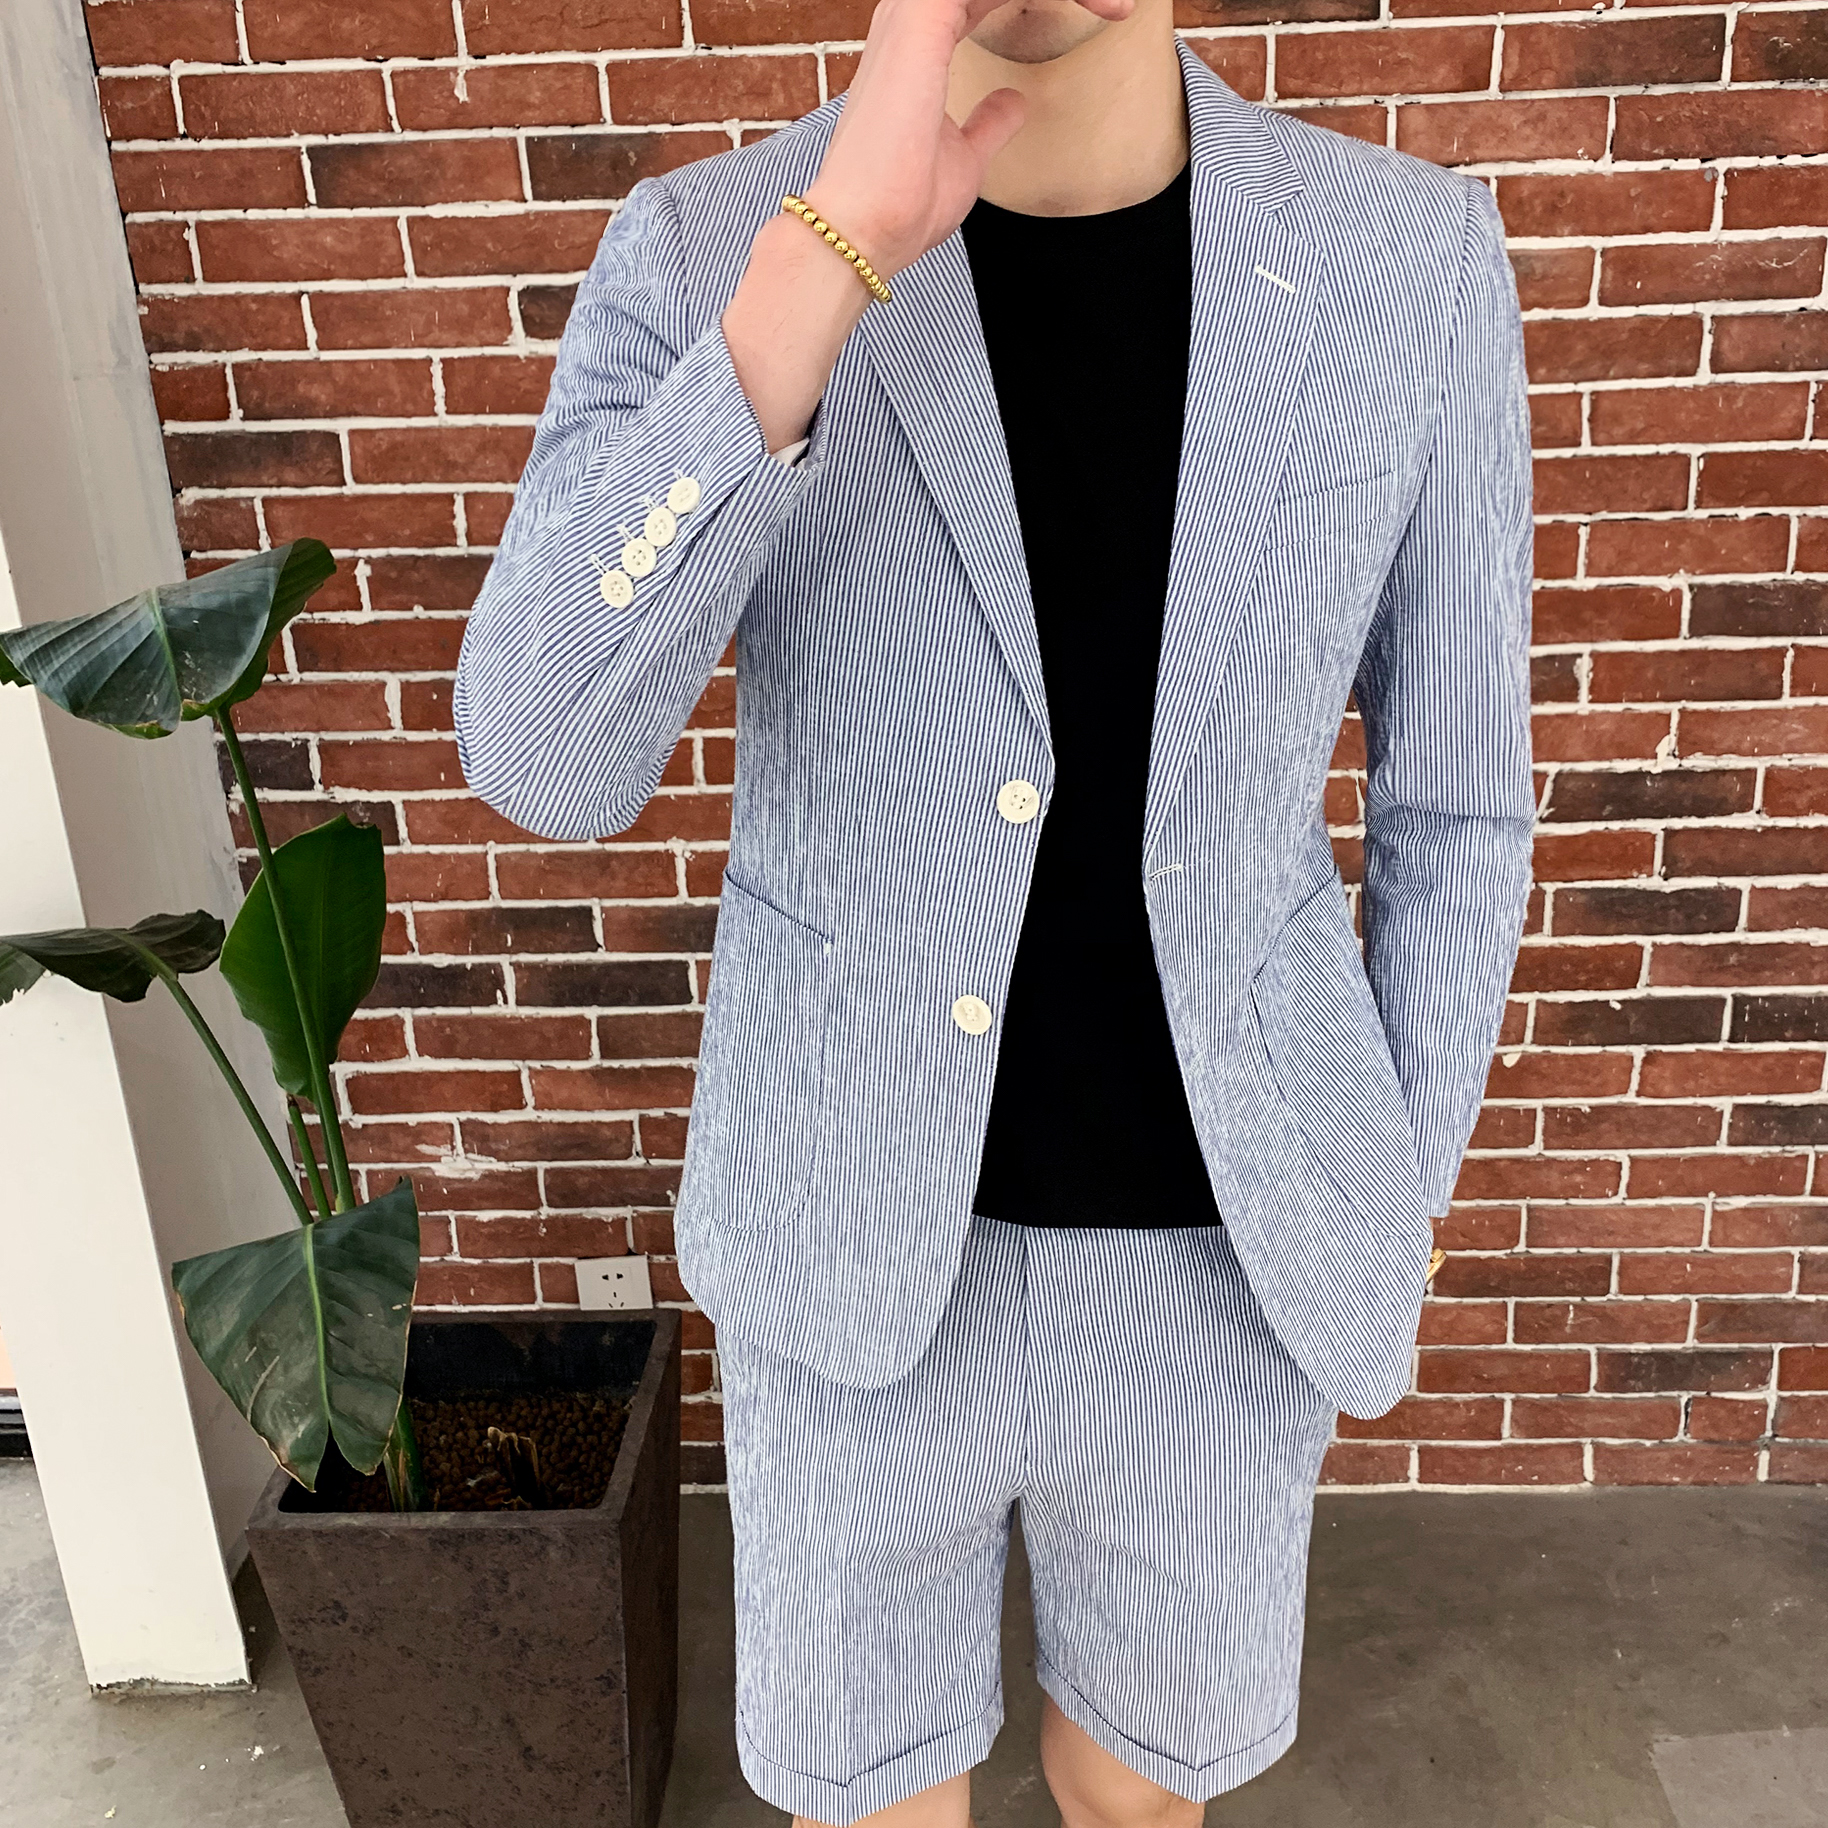 <font><b>Mens</b></font> <font><b>Suit</b></font> With Pants <font><b>Shorts</b></font> 2 Piece <font><b>Men</b></font> Tweed Retro Blue Striped Tuxedo <font><b>Suits</b></font> for Party Costume Homme Tunic <font><b>Suit</b></font> Dress Spring image